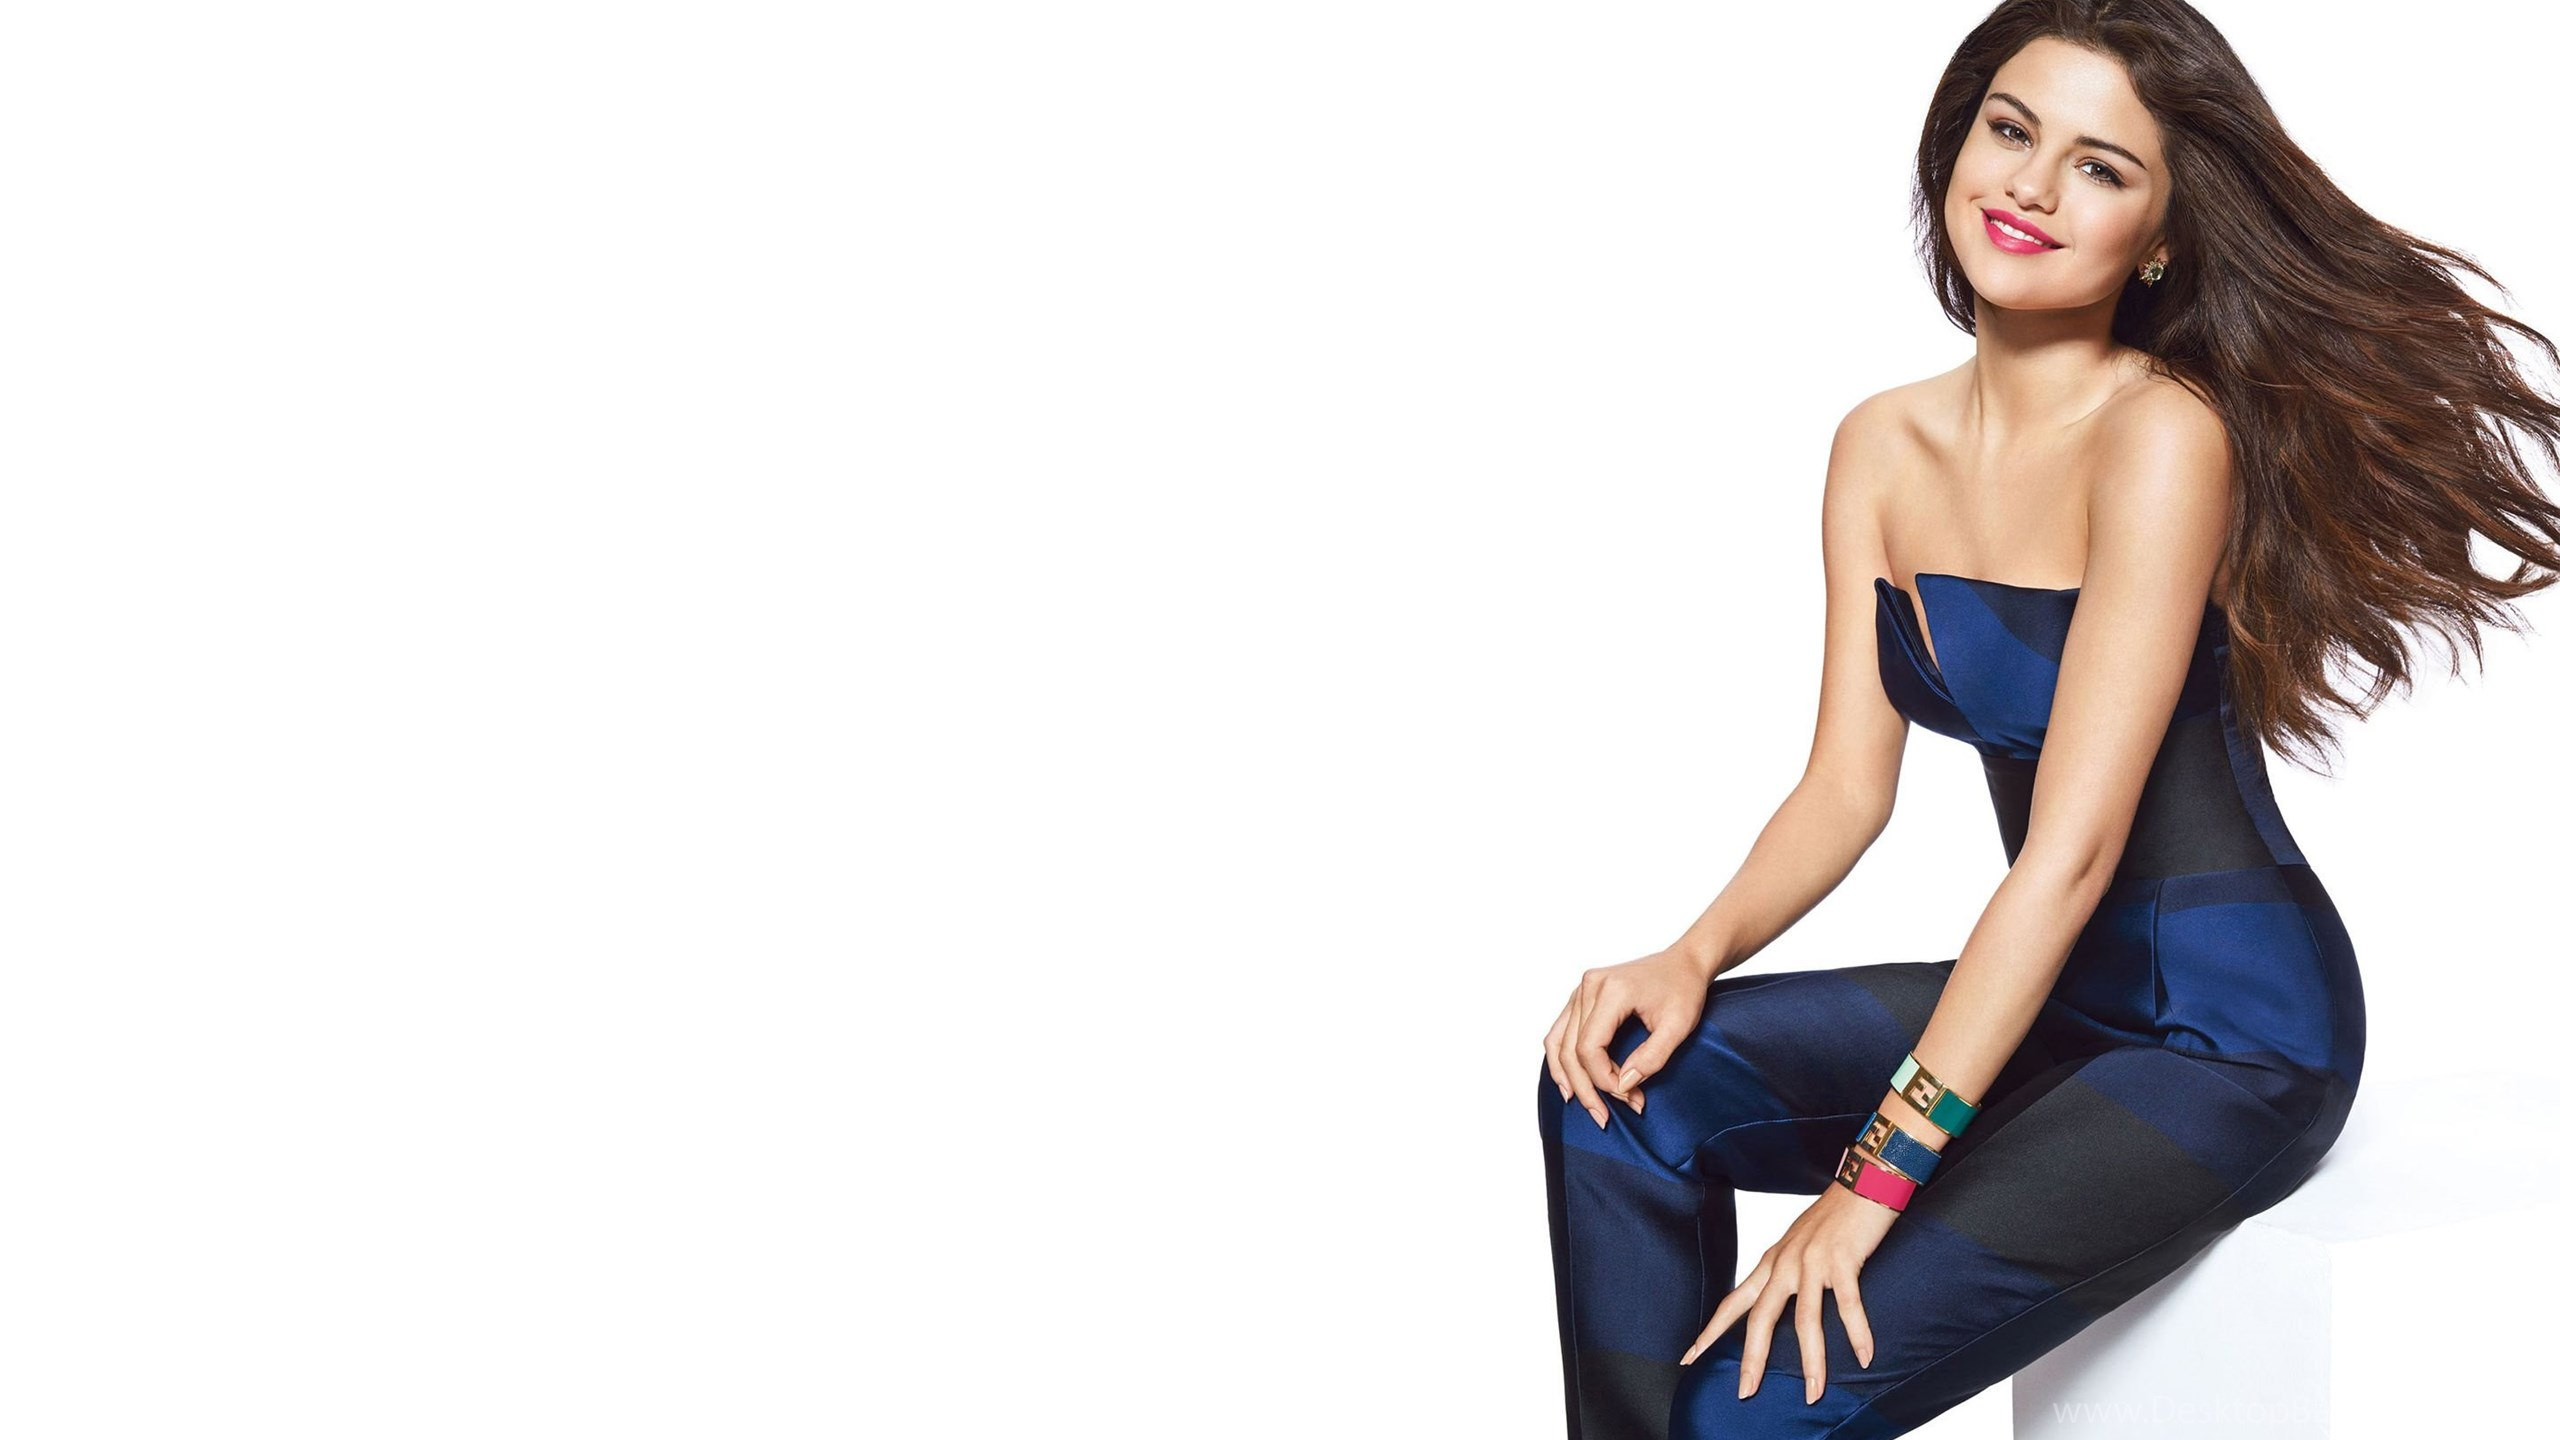 selena gomez wallpapers page 1 hd wallpapers desktop background